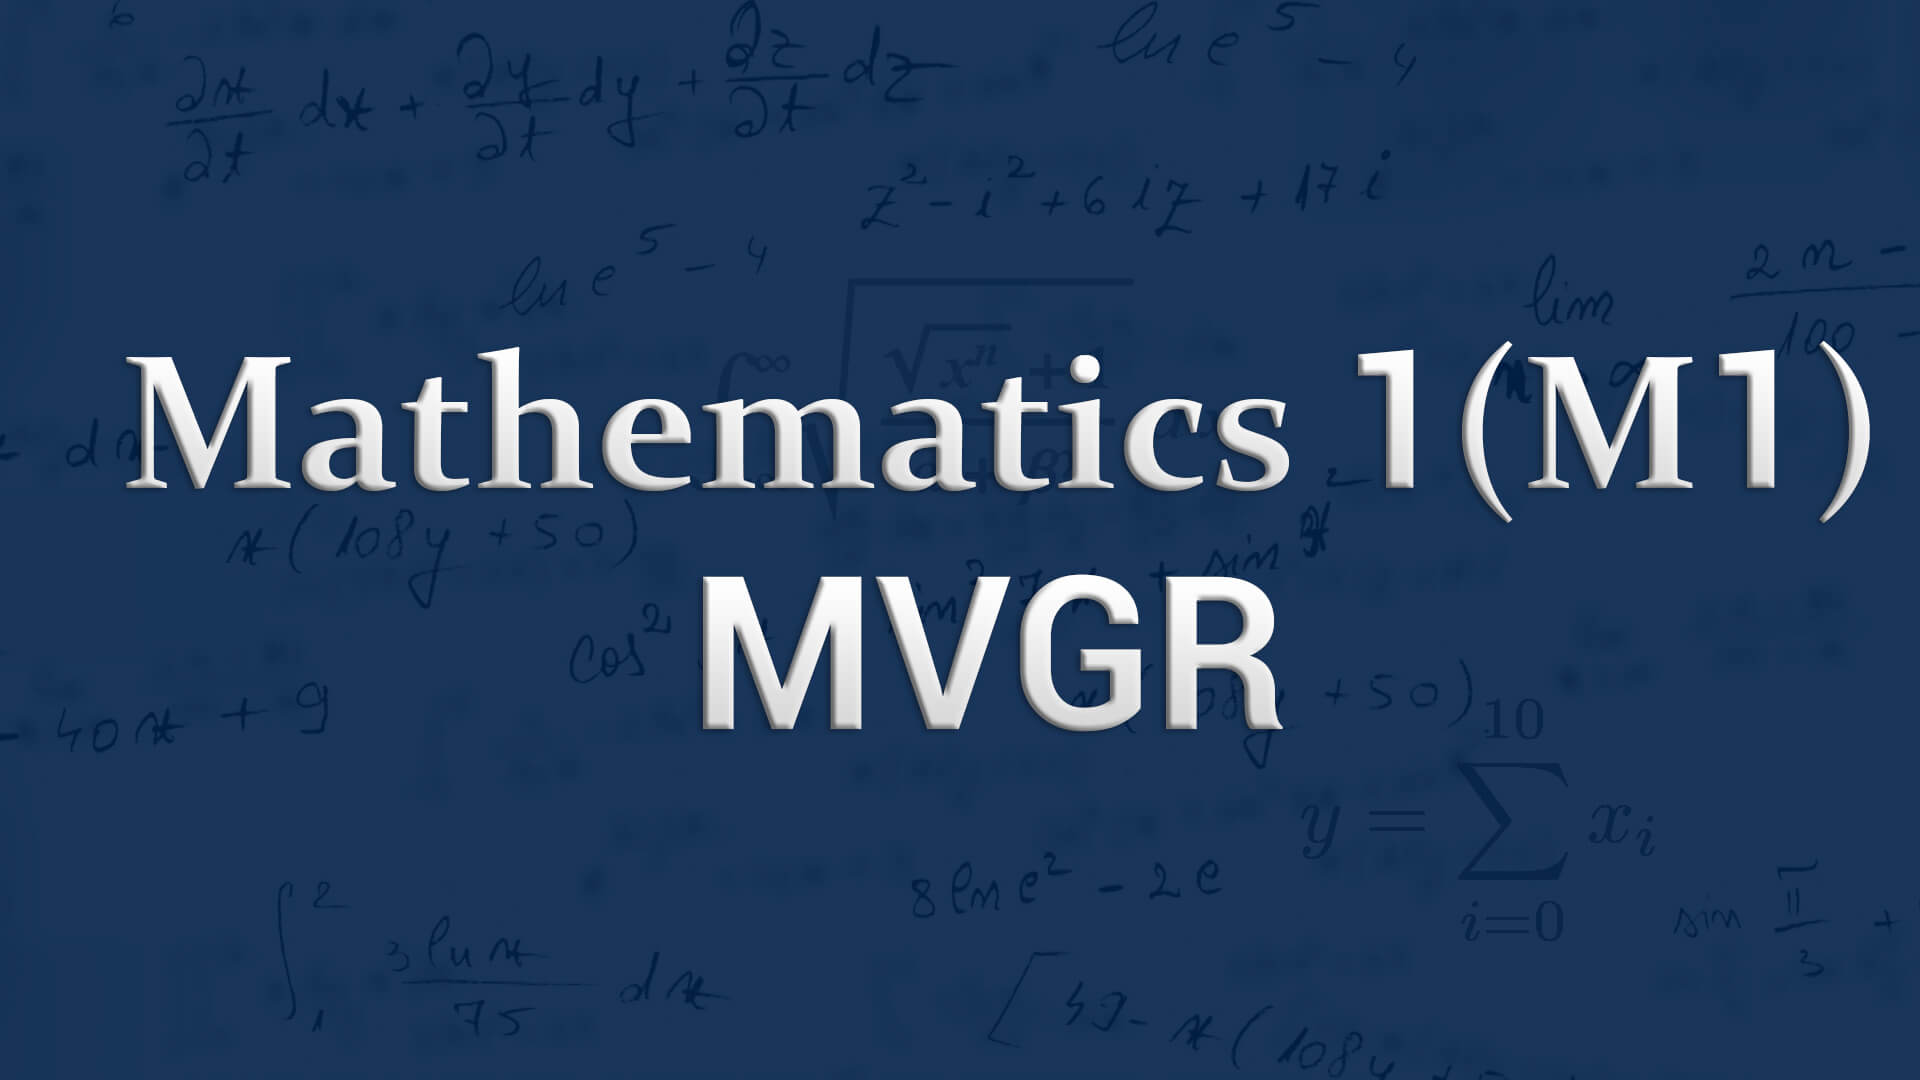 Mathematics 1 for MVGR